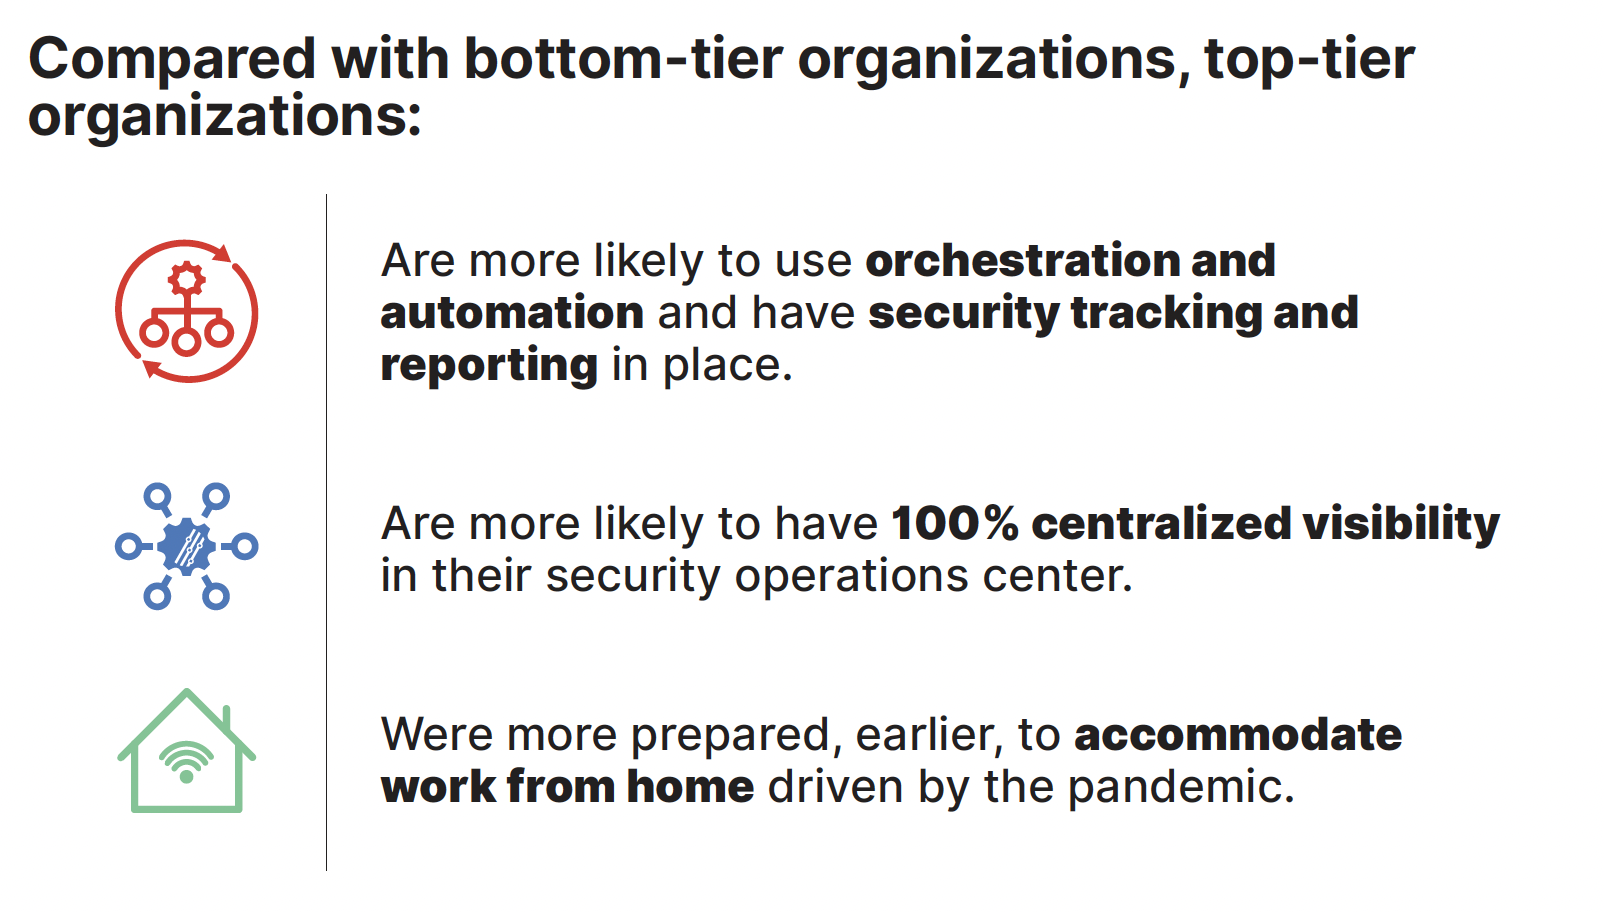 Compared with bottom-tier organizations, top-tier organizations